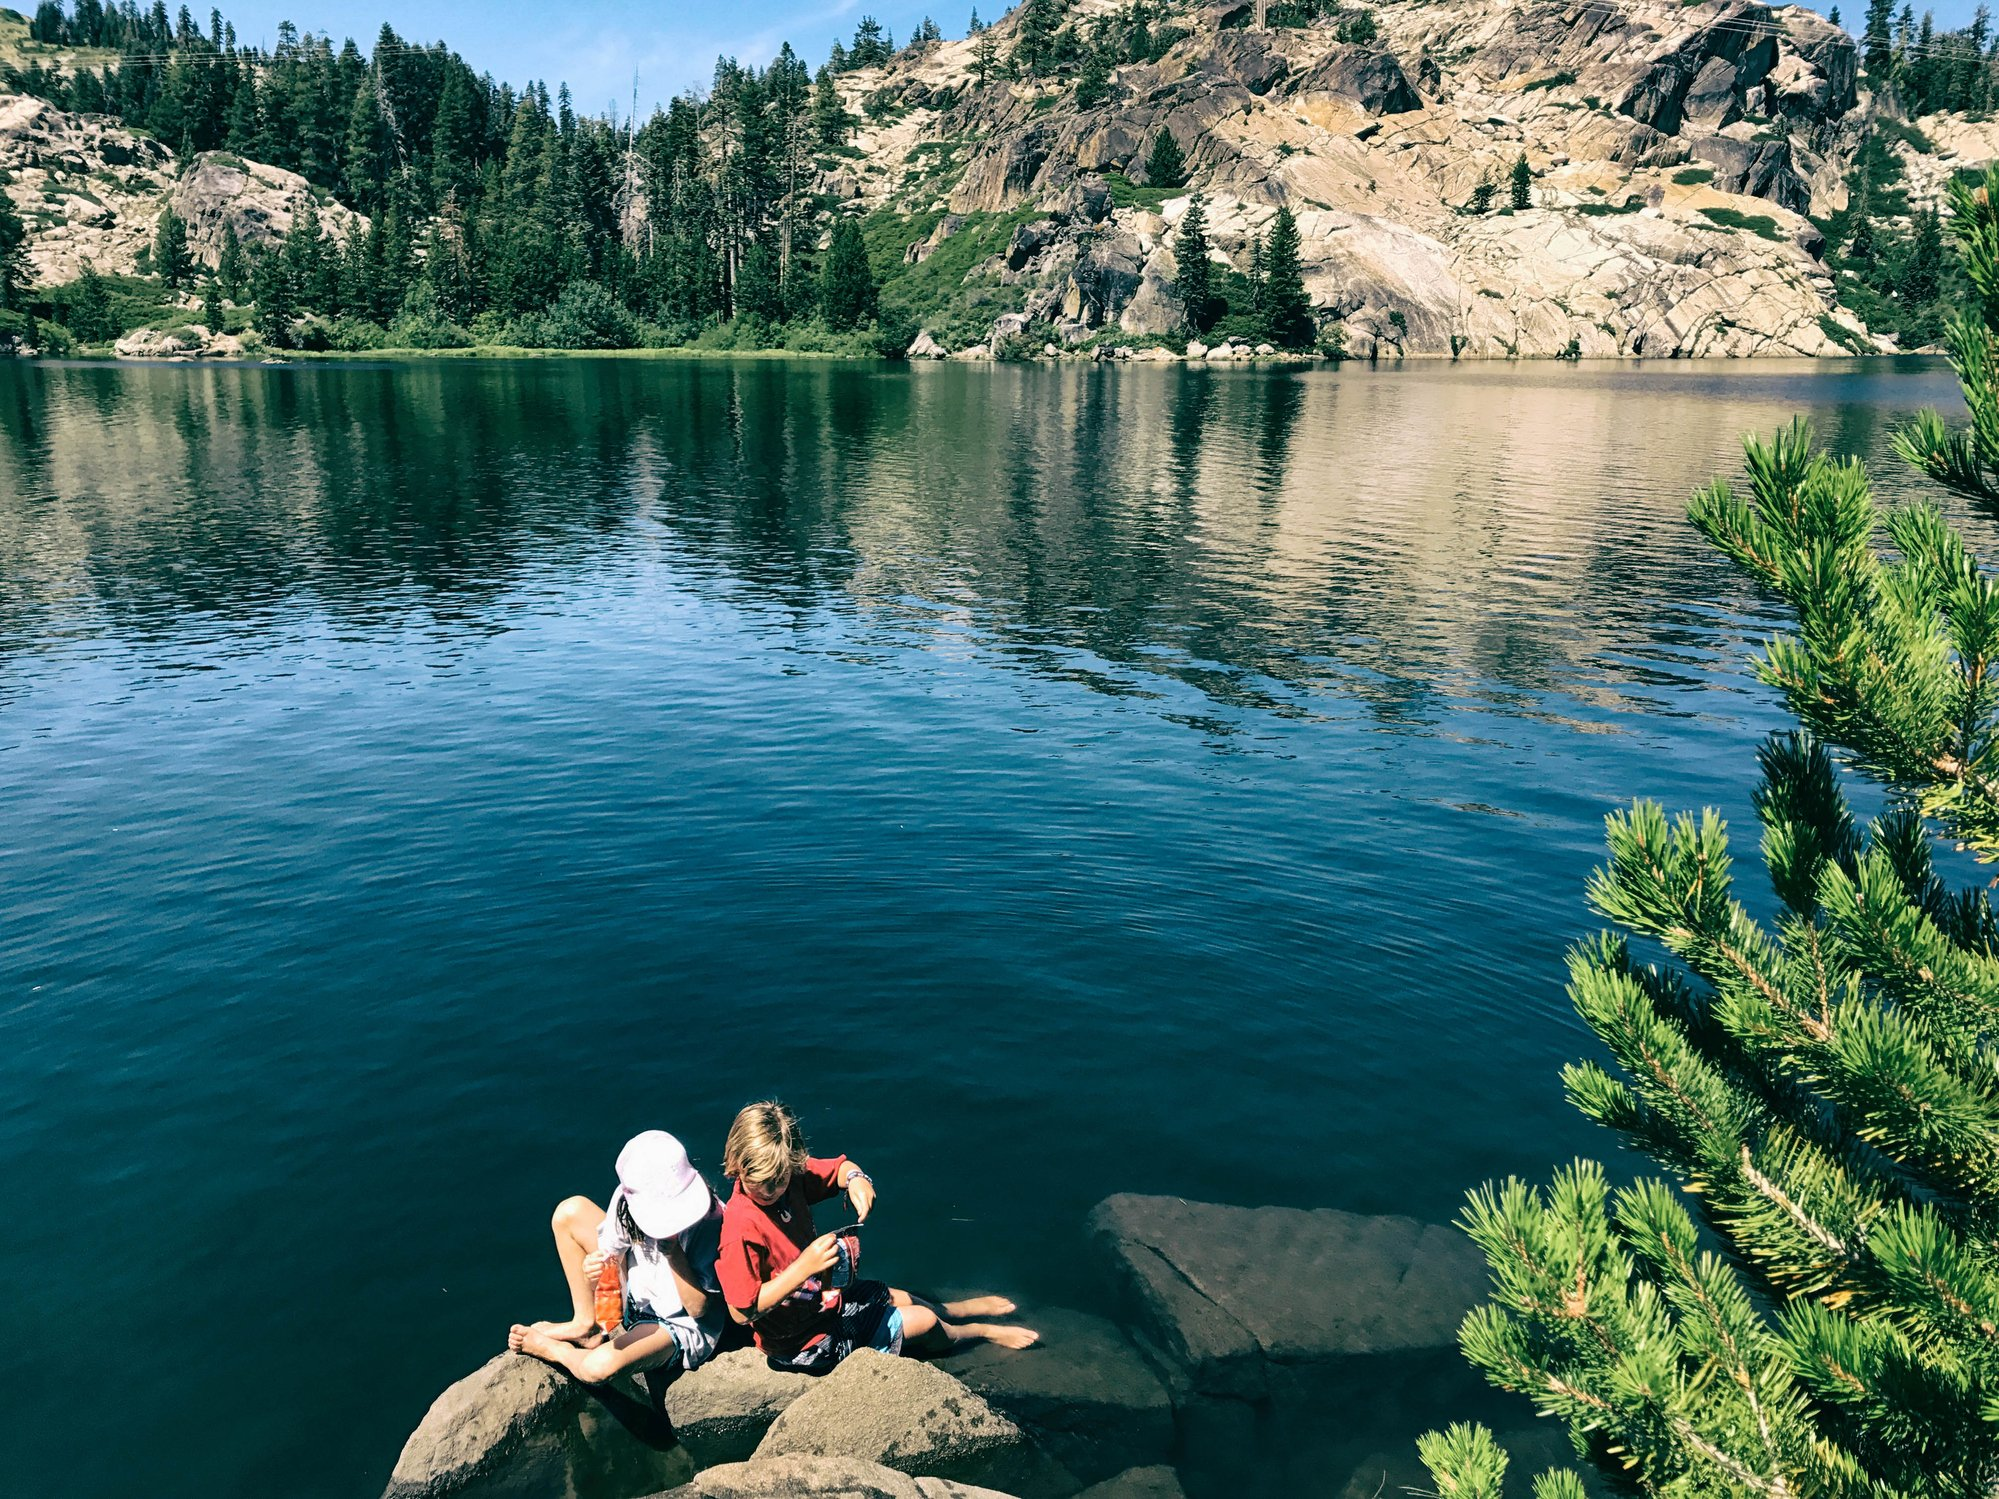 Two kids play by the water at Lake Tahoe.